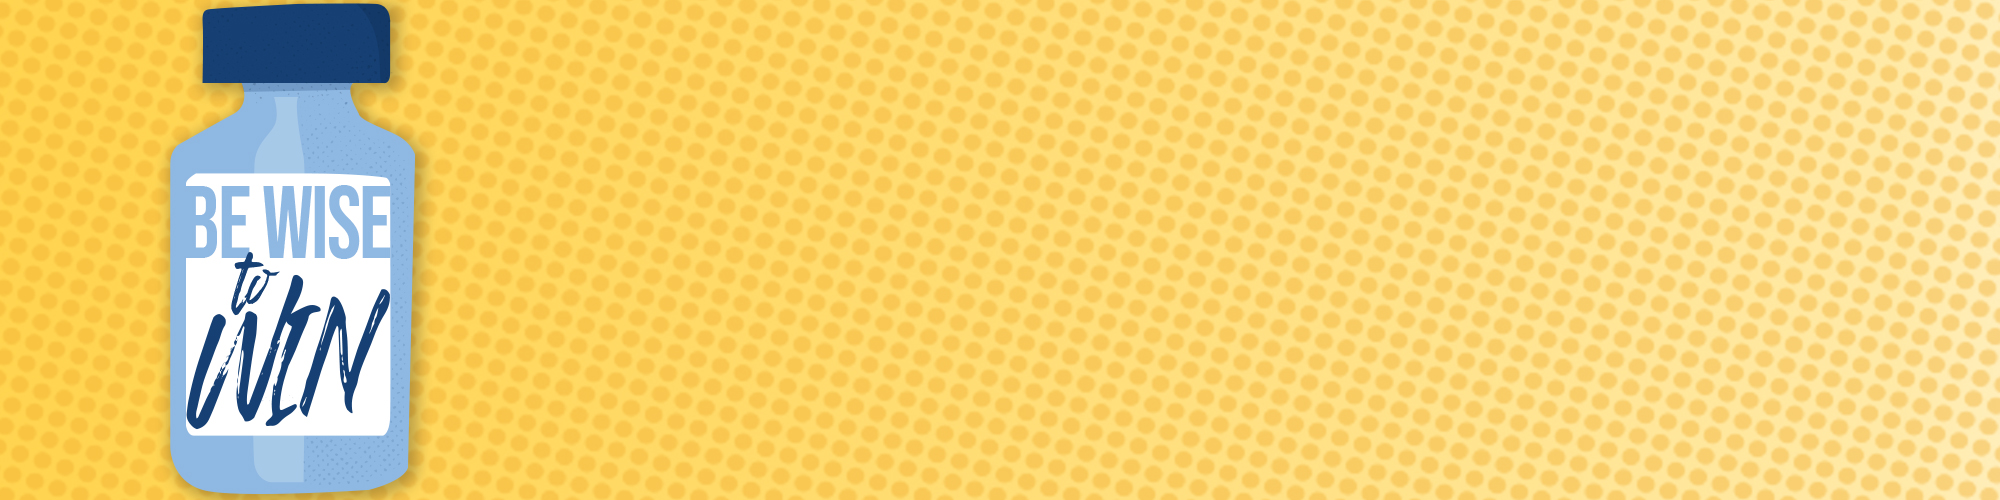 Be WISE to Win blue vaccine vile on yellow background